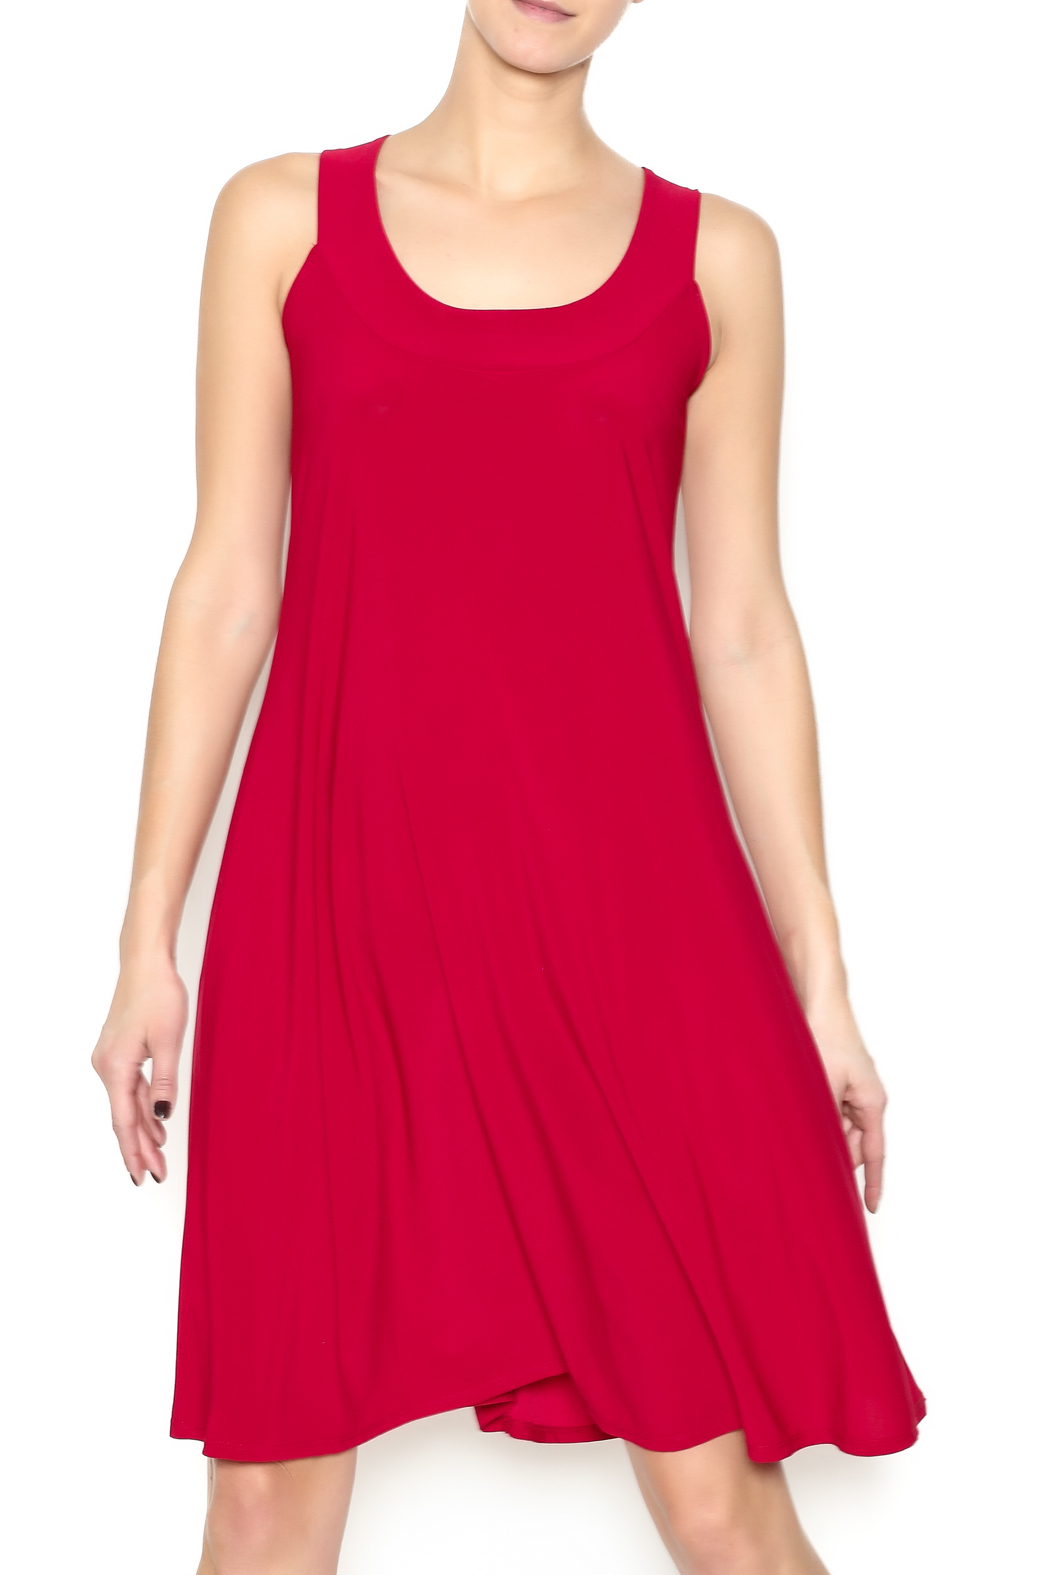 Ellen Parker Red Trapeze Dress - Main Image